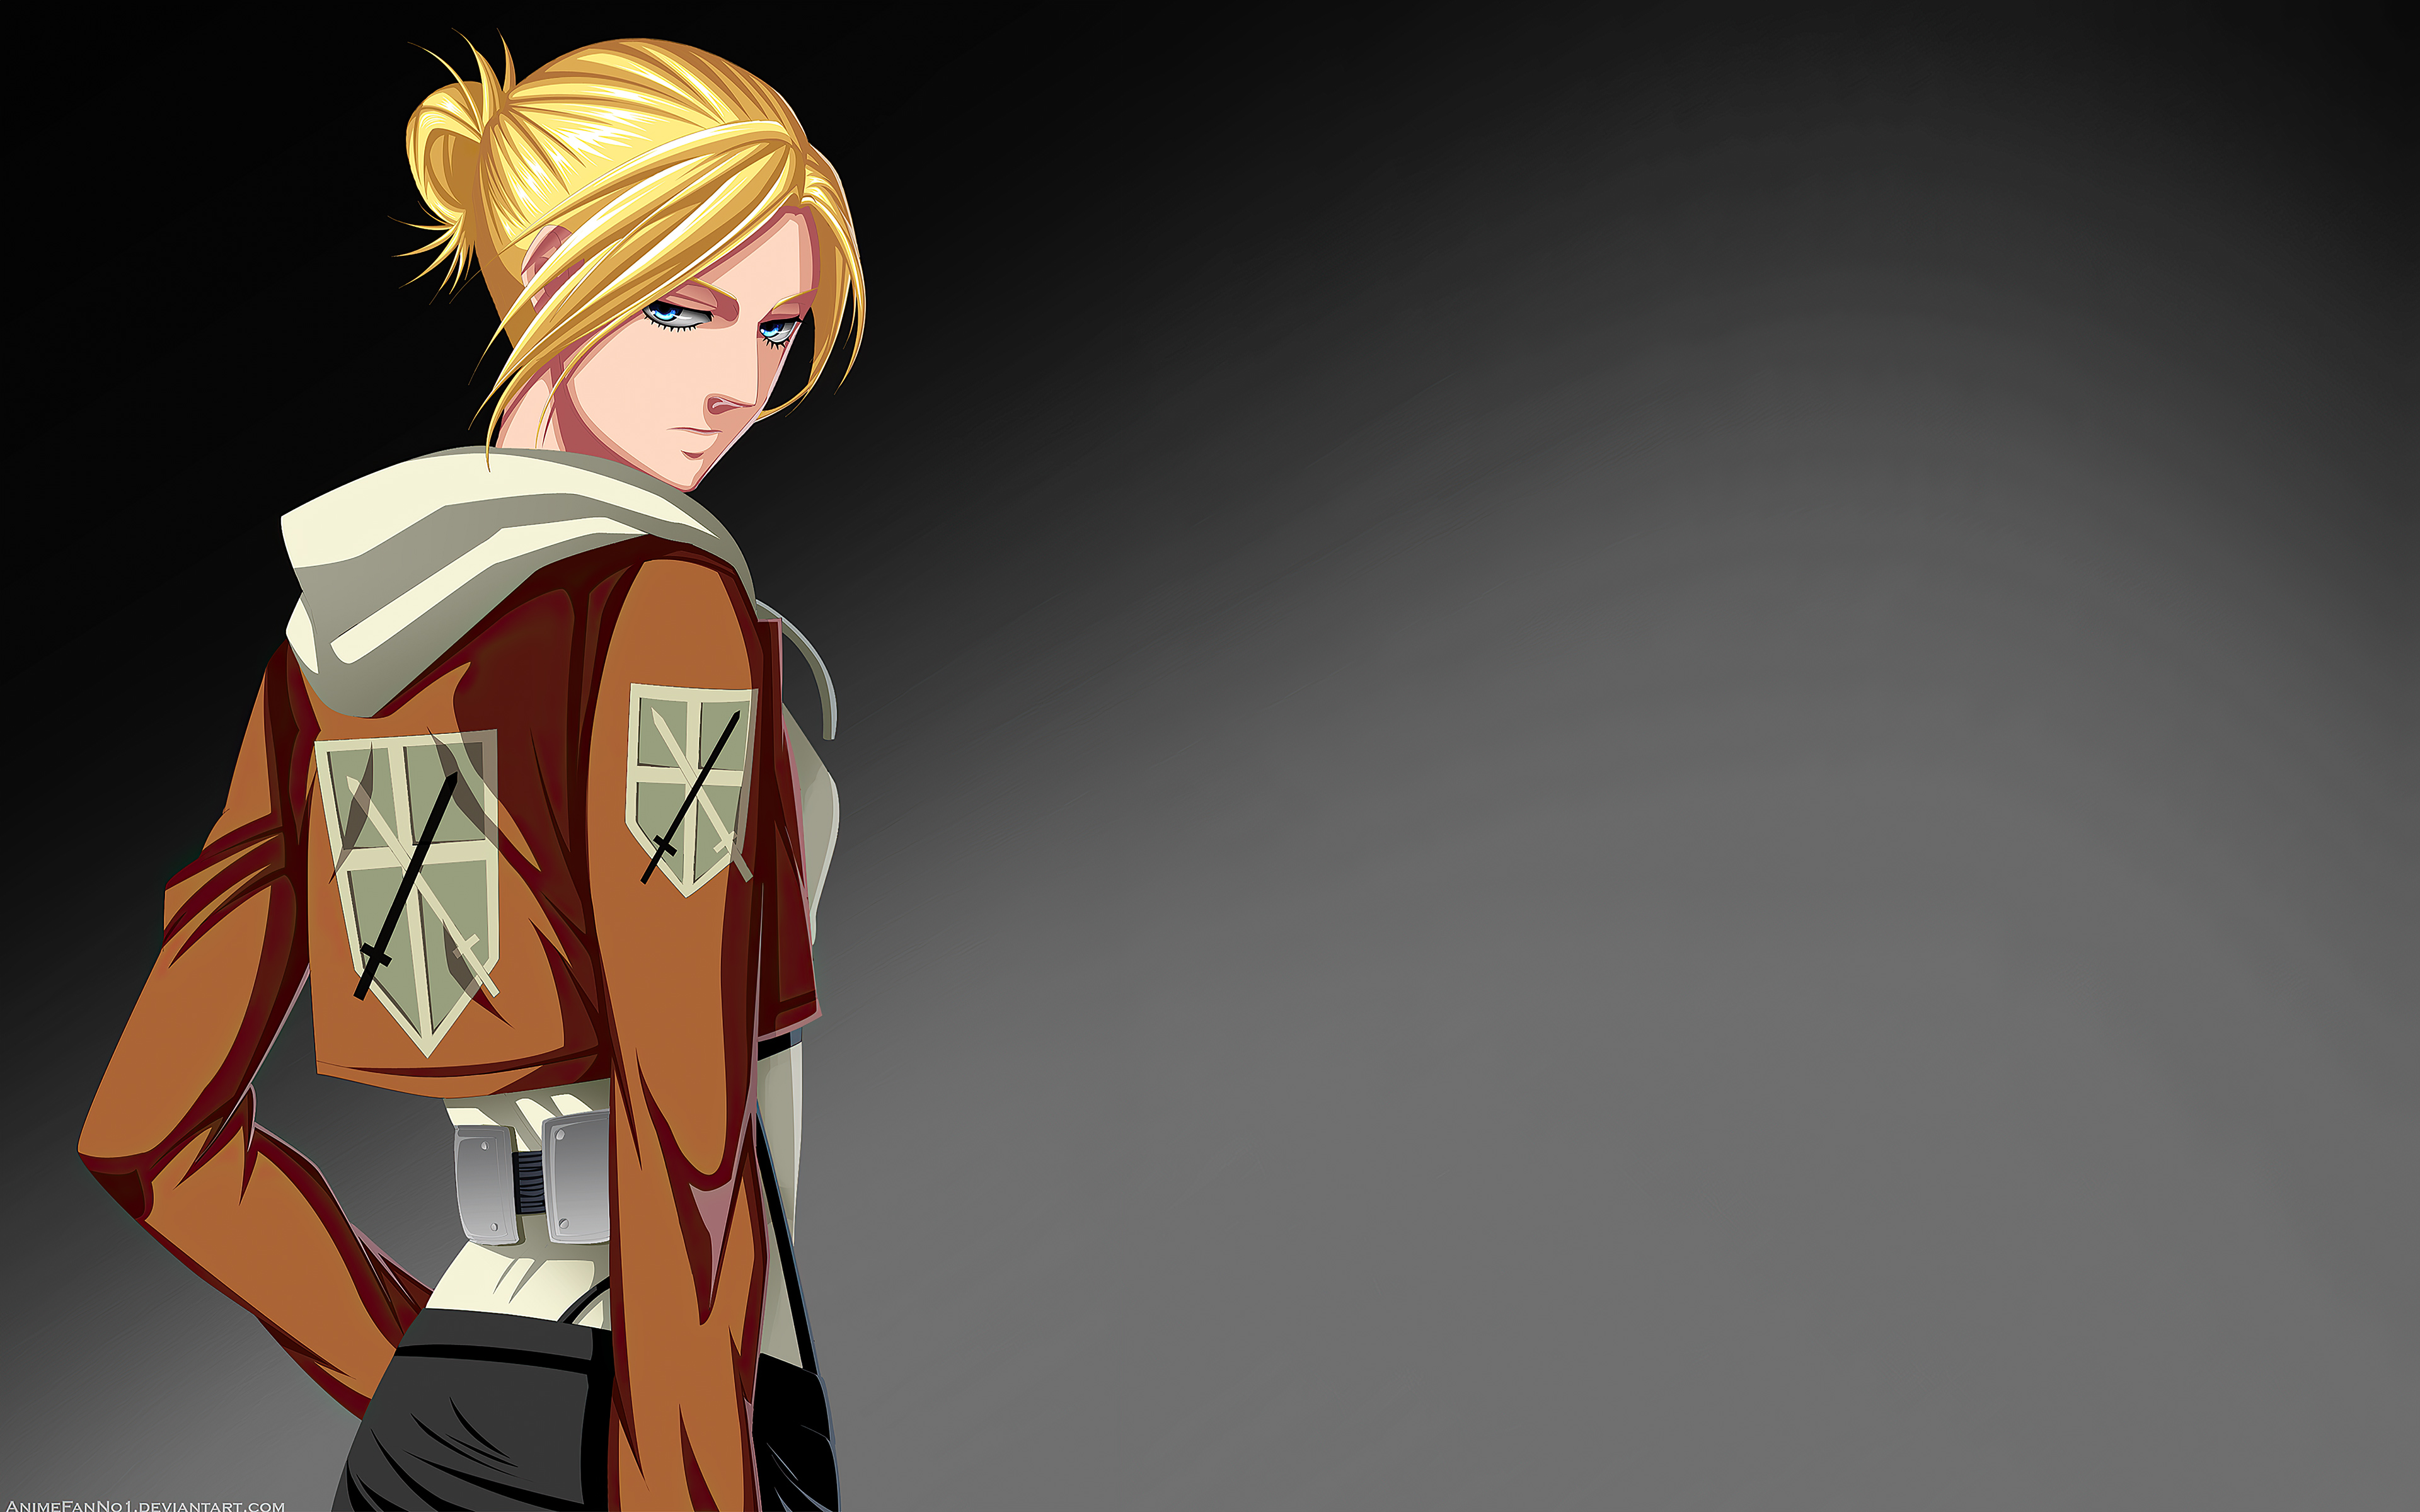 Attack On Titan Annie Leonhart Shingeki No Kyojin Hd Anime 4k Wallpapers Images Backgrounds Photos And Pictures